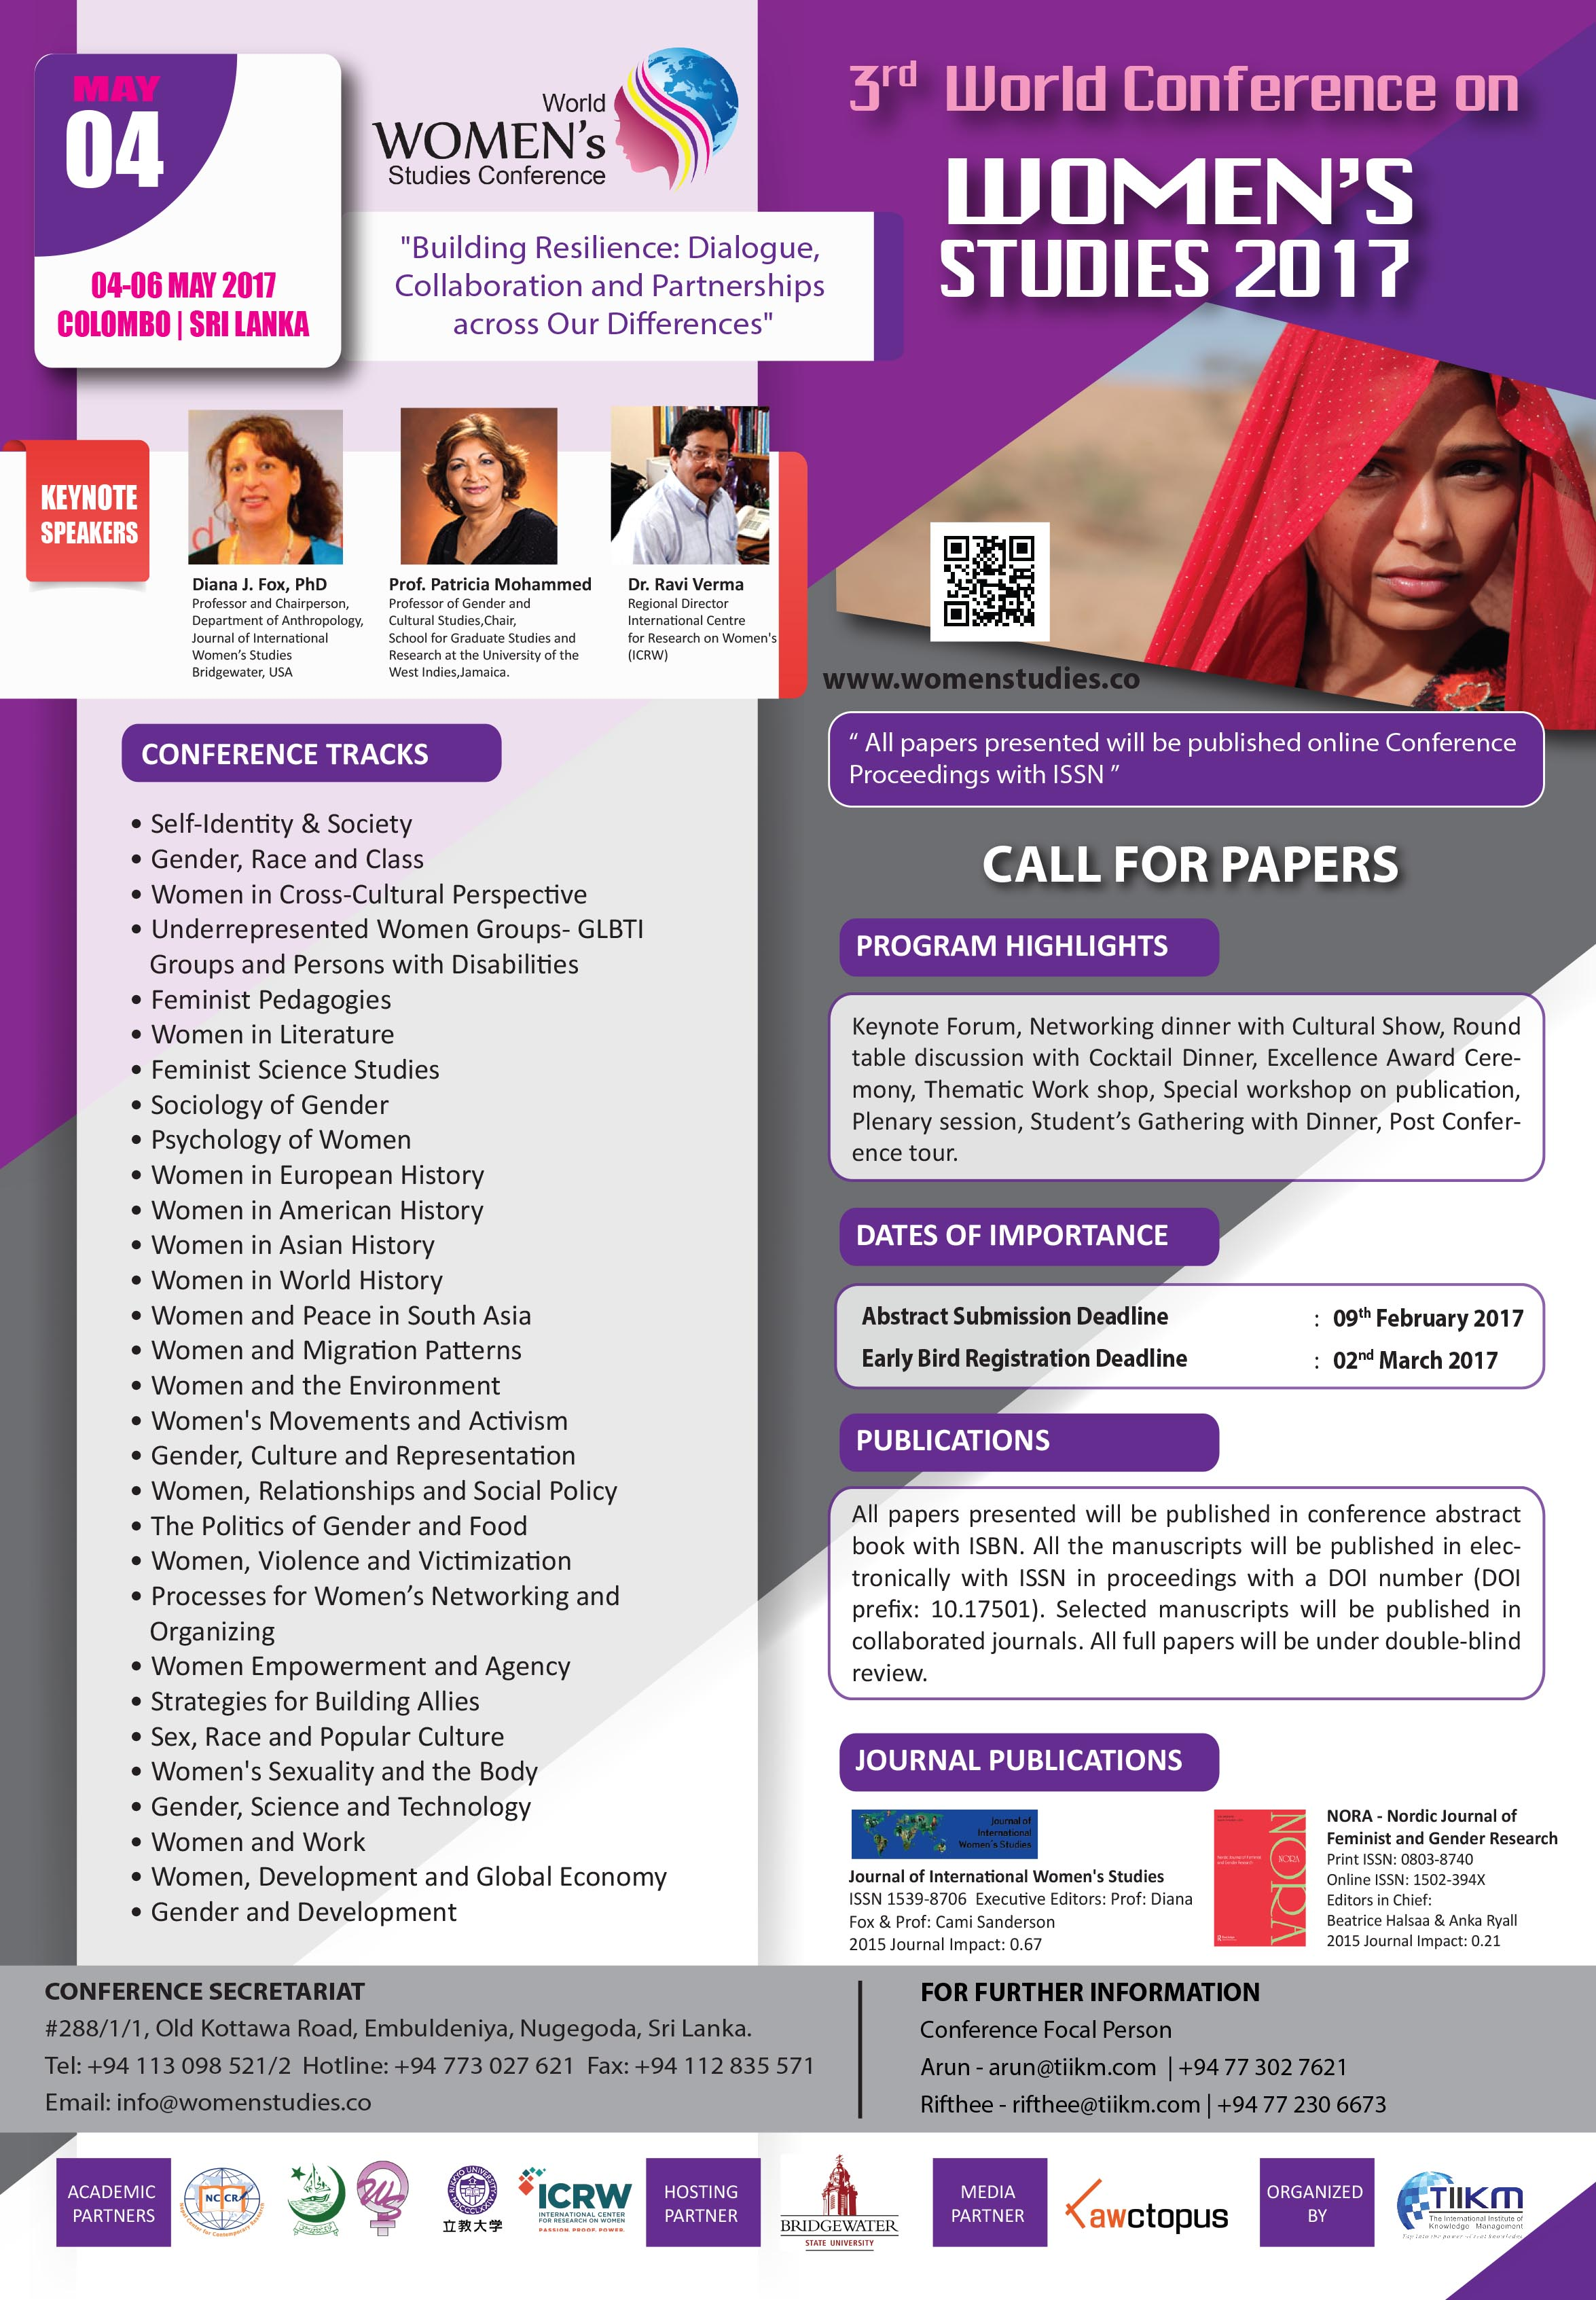 Call for Papers: 3rd World Conference on Women's Studies 2017